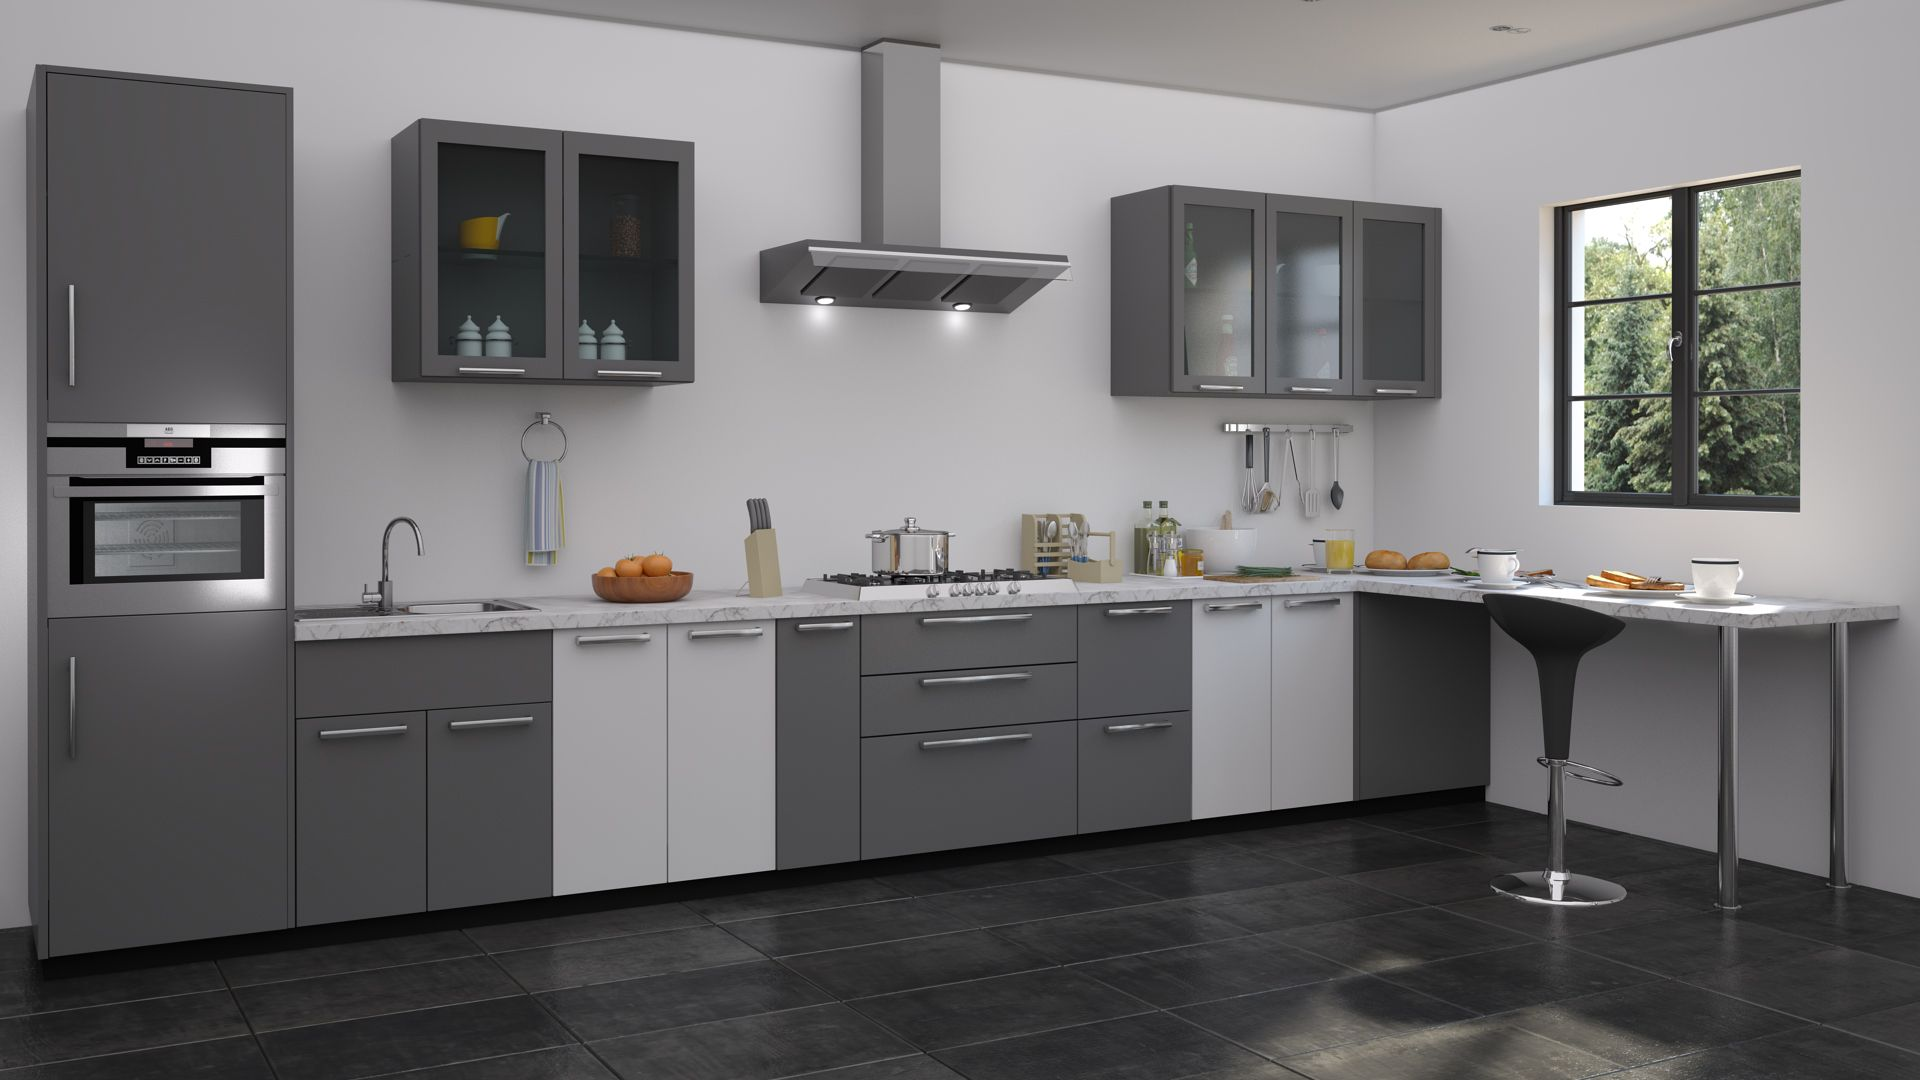 Kitchen Design Websites Collection The New Monochrome Modular Kitchen Collectioncreate Your Own .